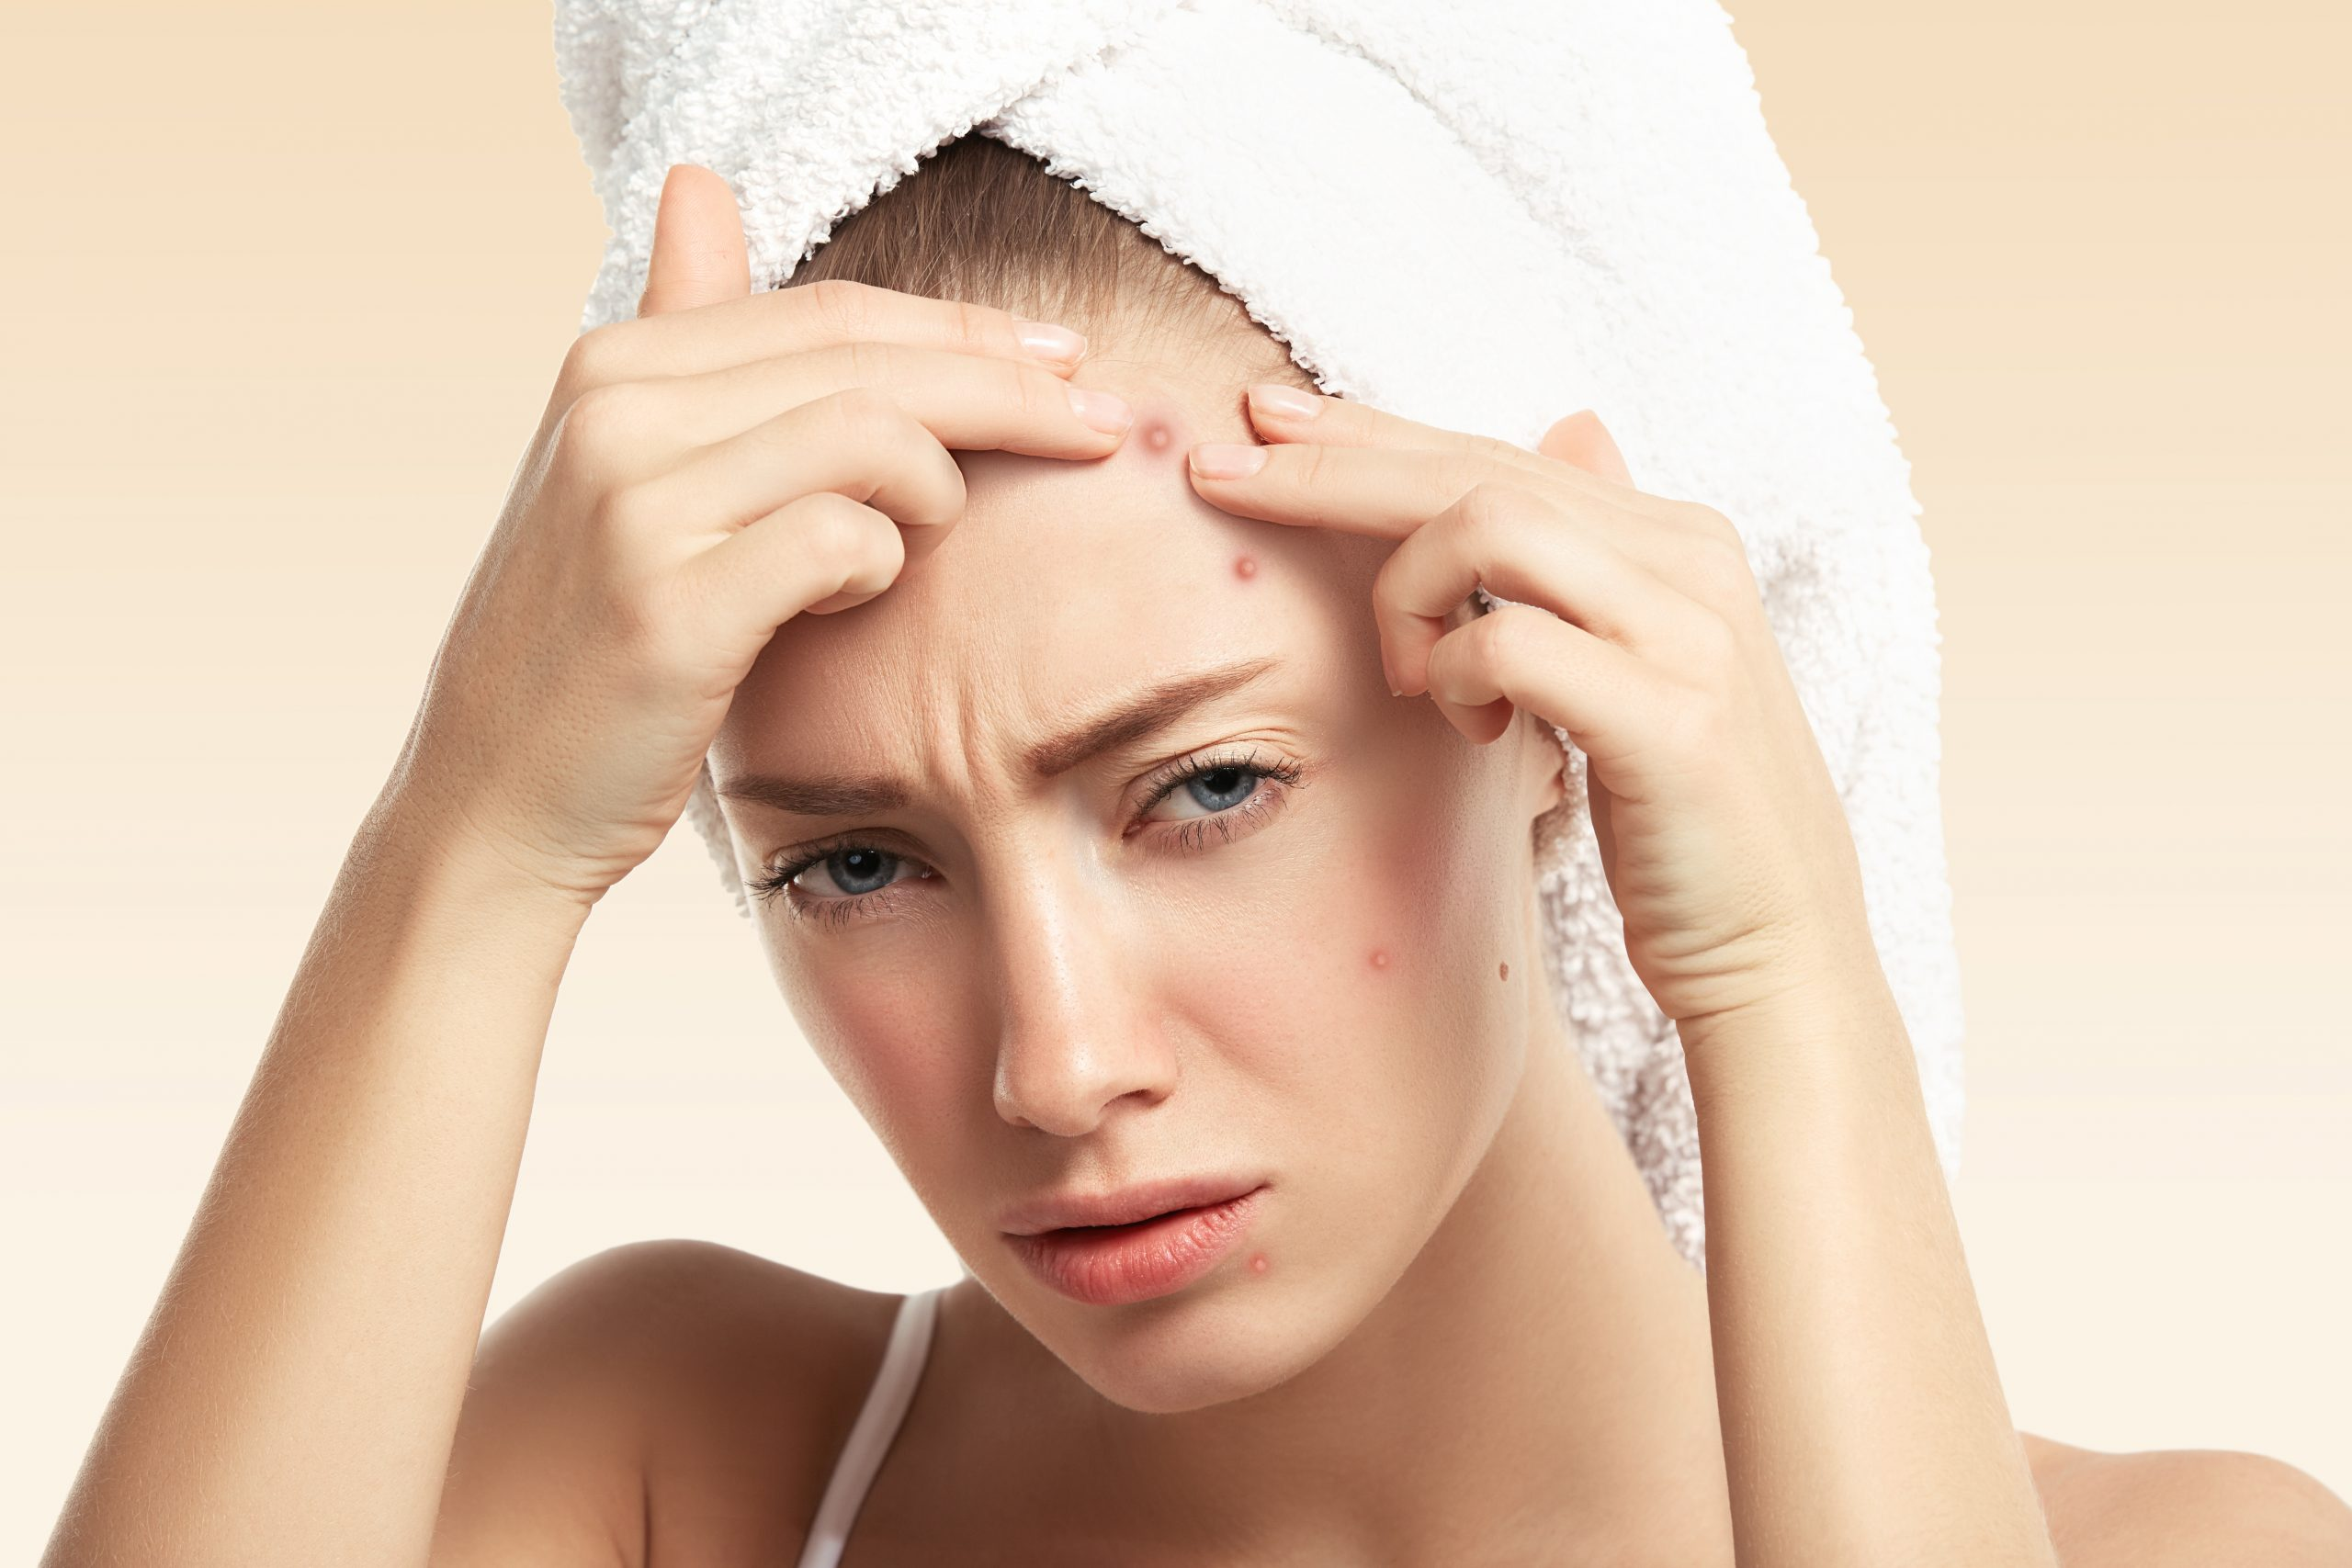 Types of Acne and their Treatment